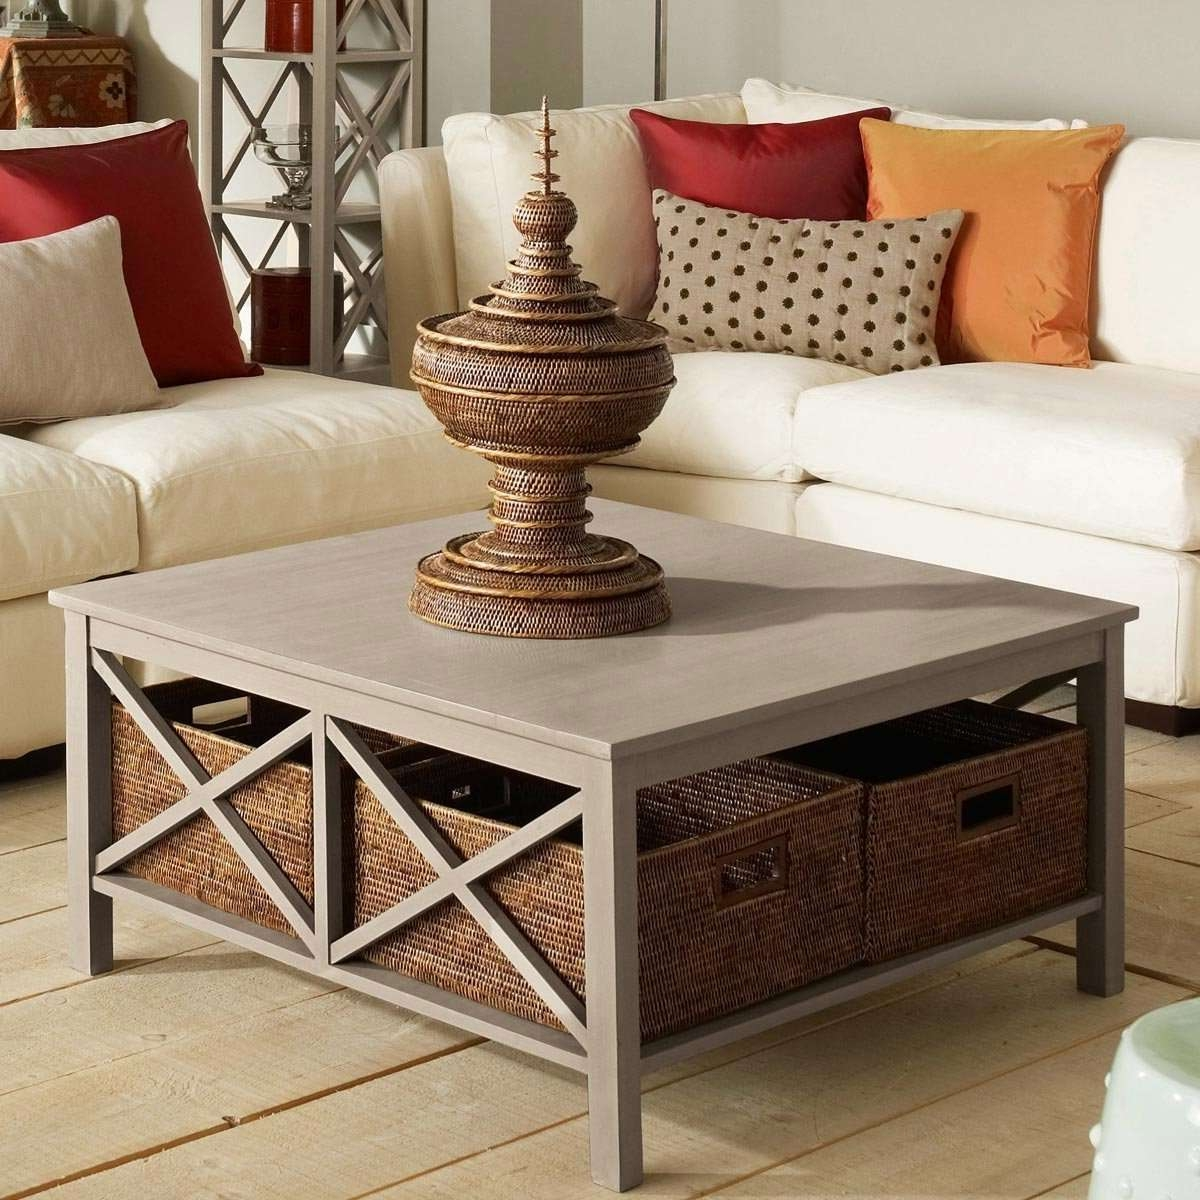 Square Coffee Table With Storage More Than One Function In One Throughout Well Known Square Coffee Tables With Storages (View 12 of 20)